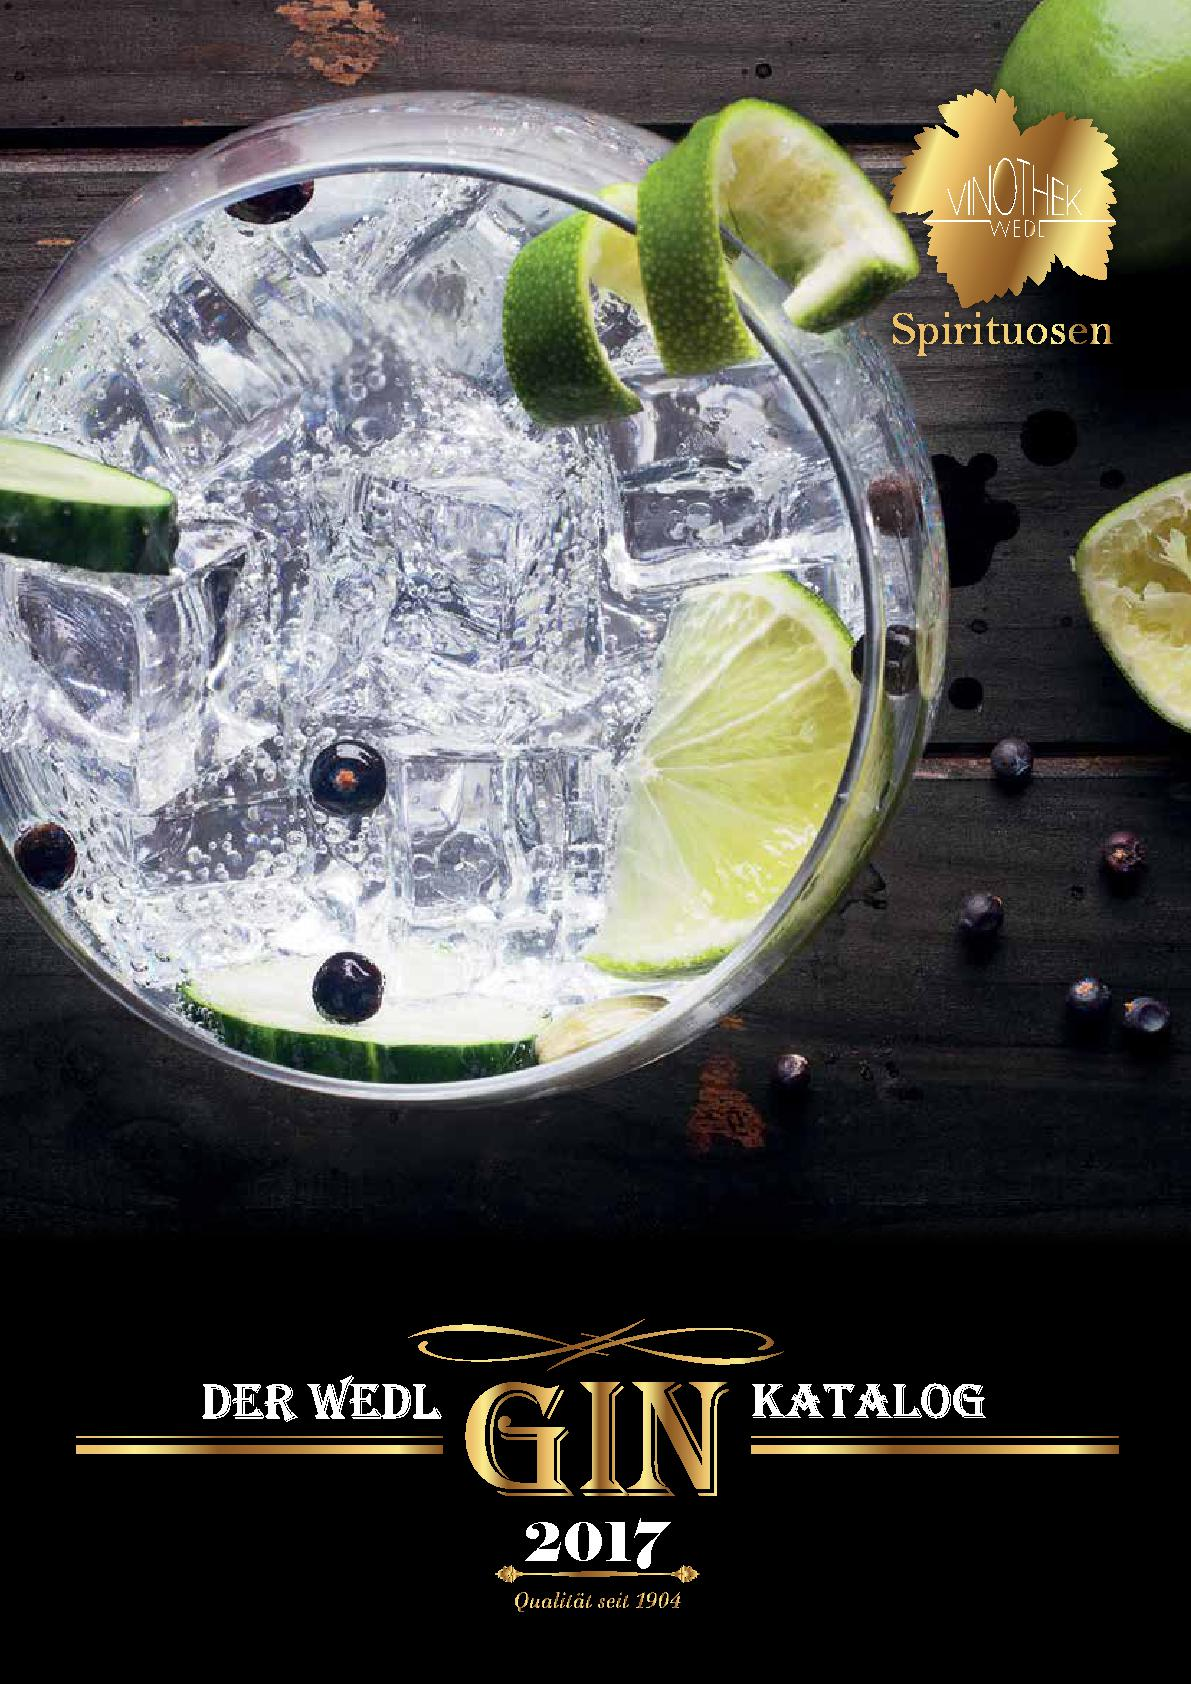 Gin bei Wedl